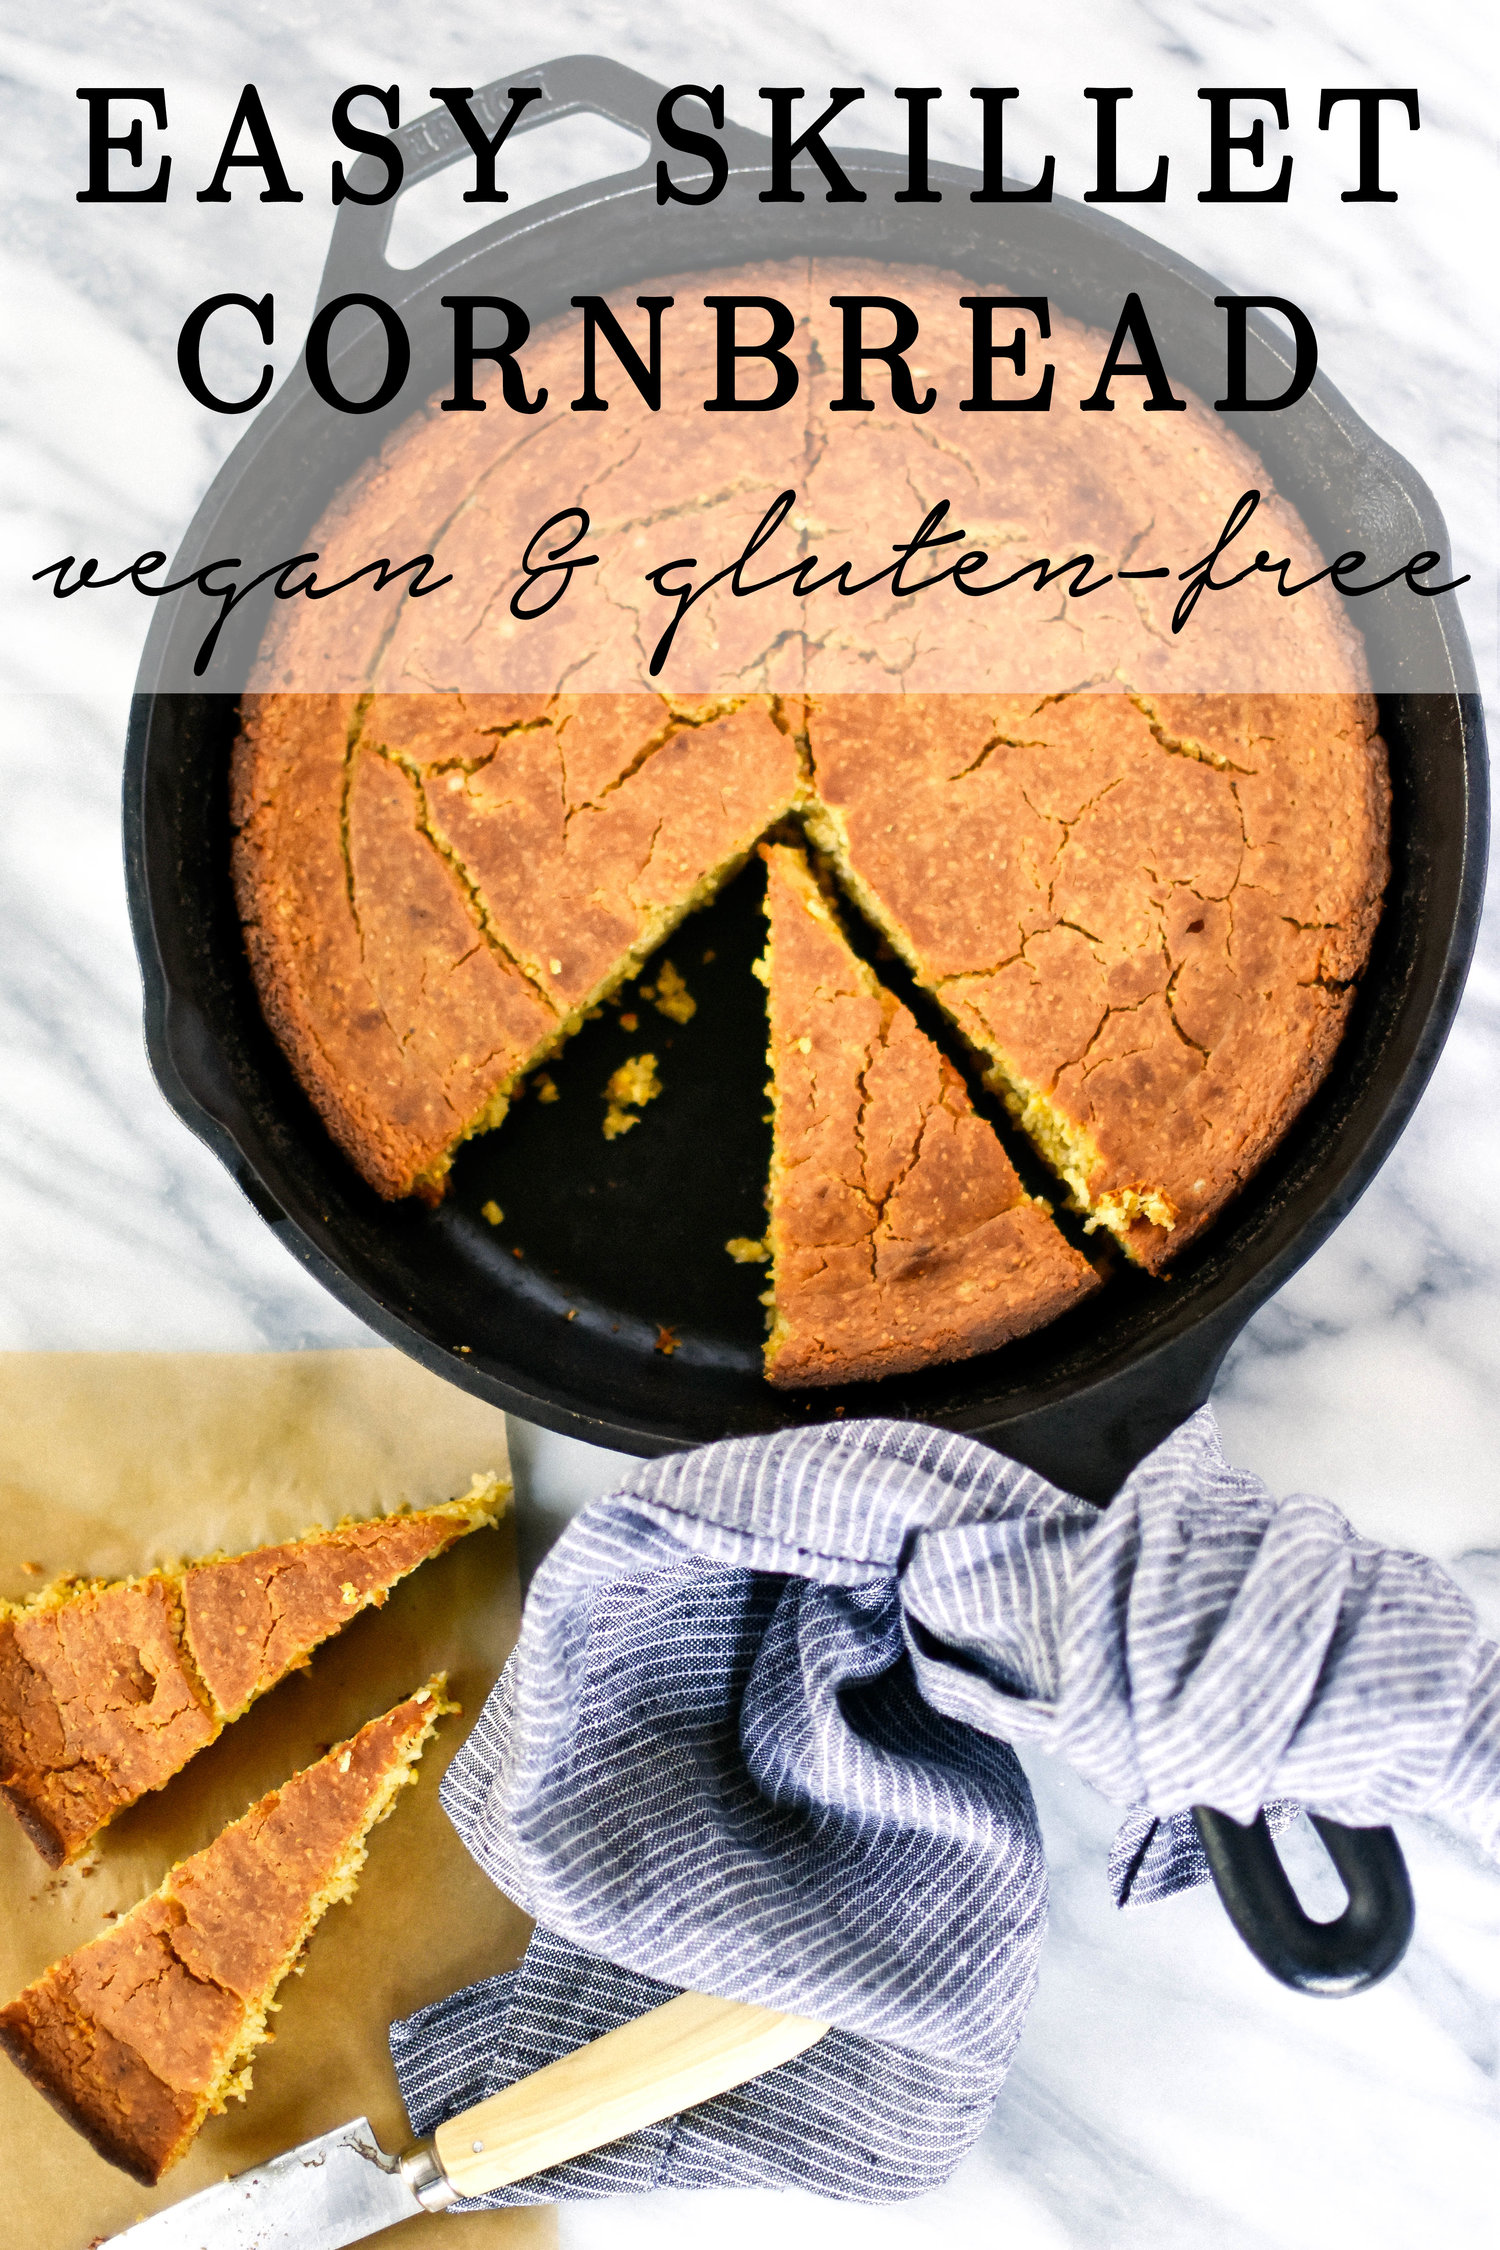 Easy Vegan and Gluten-free skillet cornbread